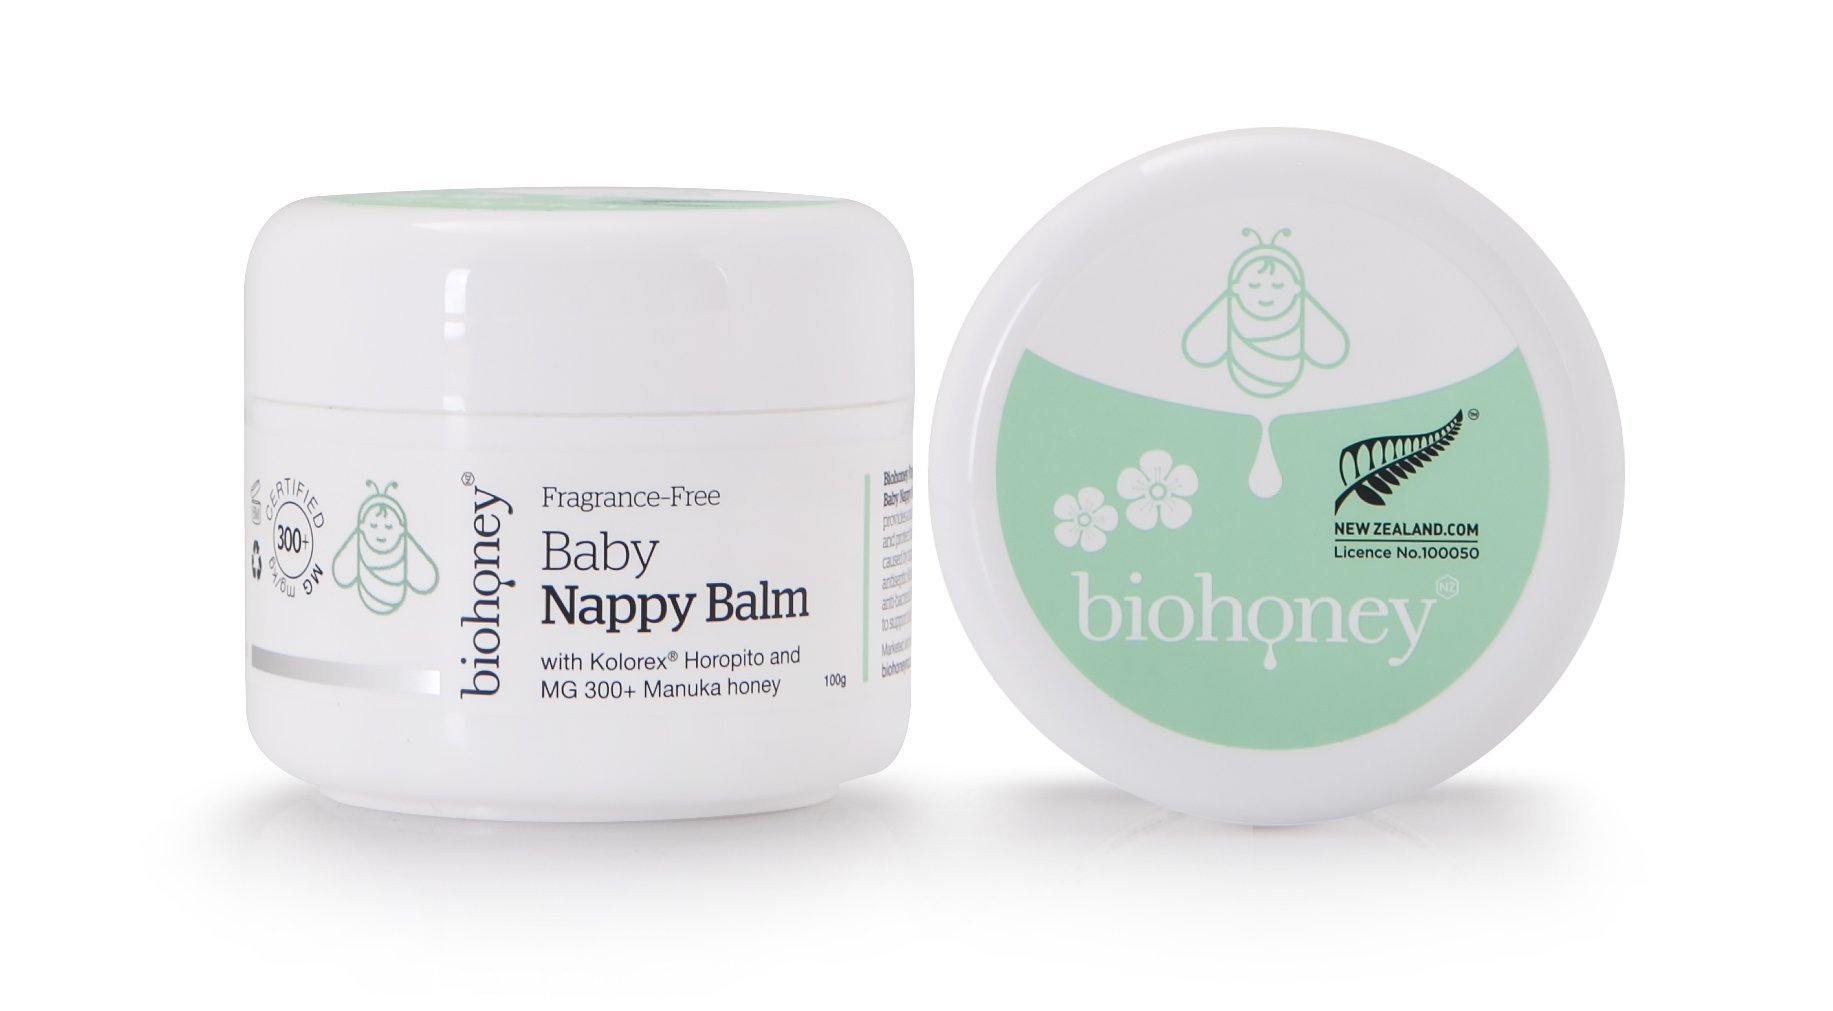 Biohoney Fragrance-Free Natural Baby Nappy Balm - Naked Baby Eco Boutique